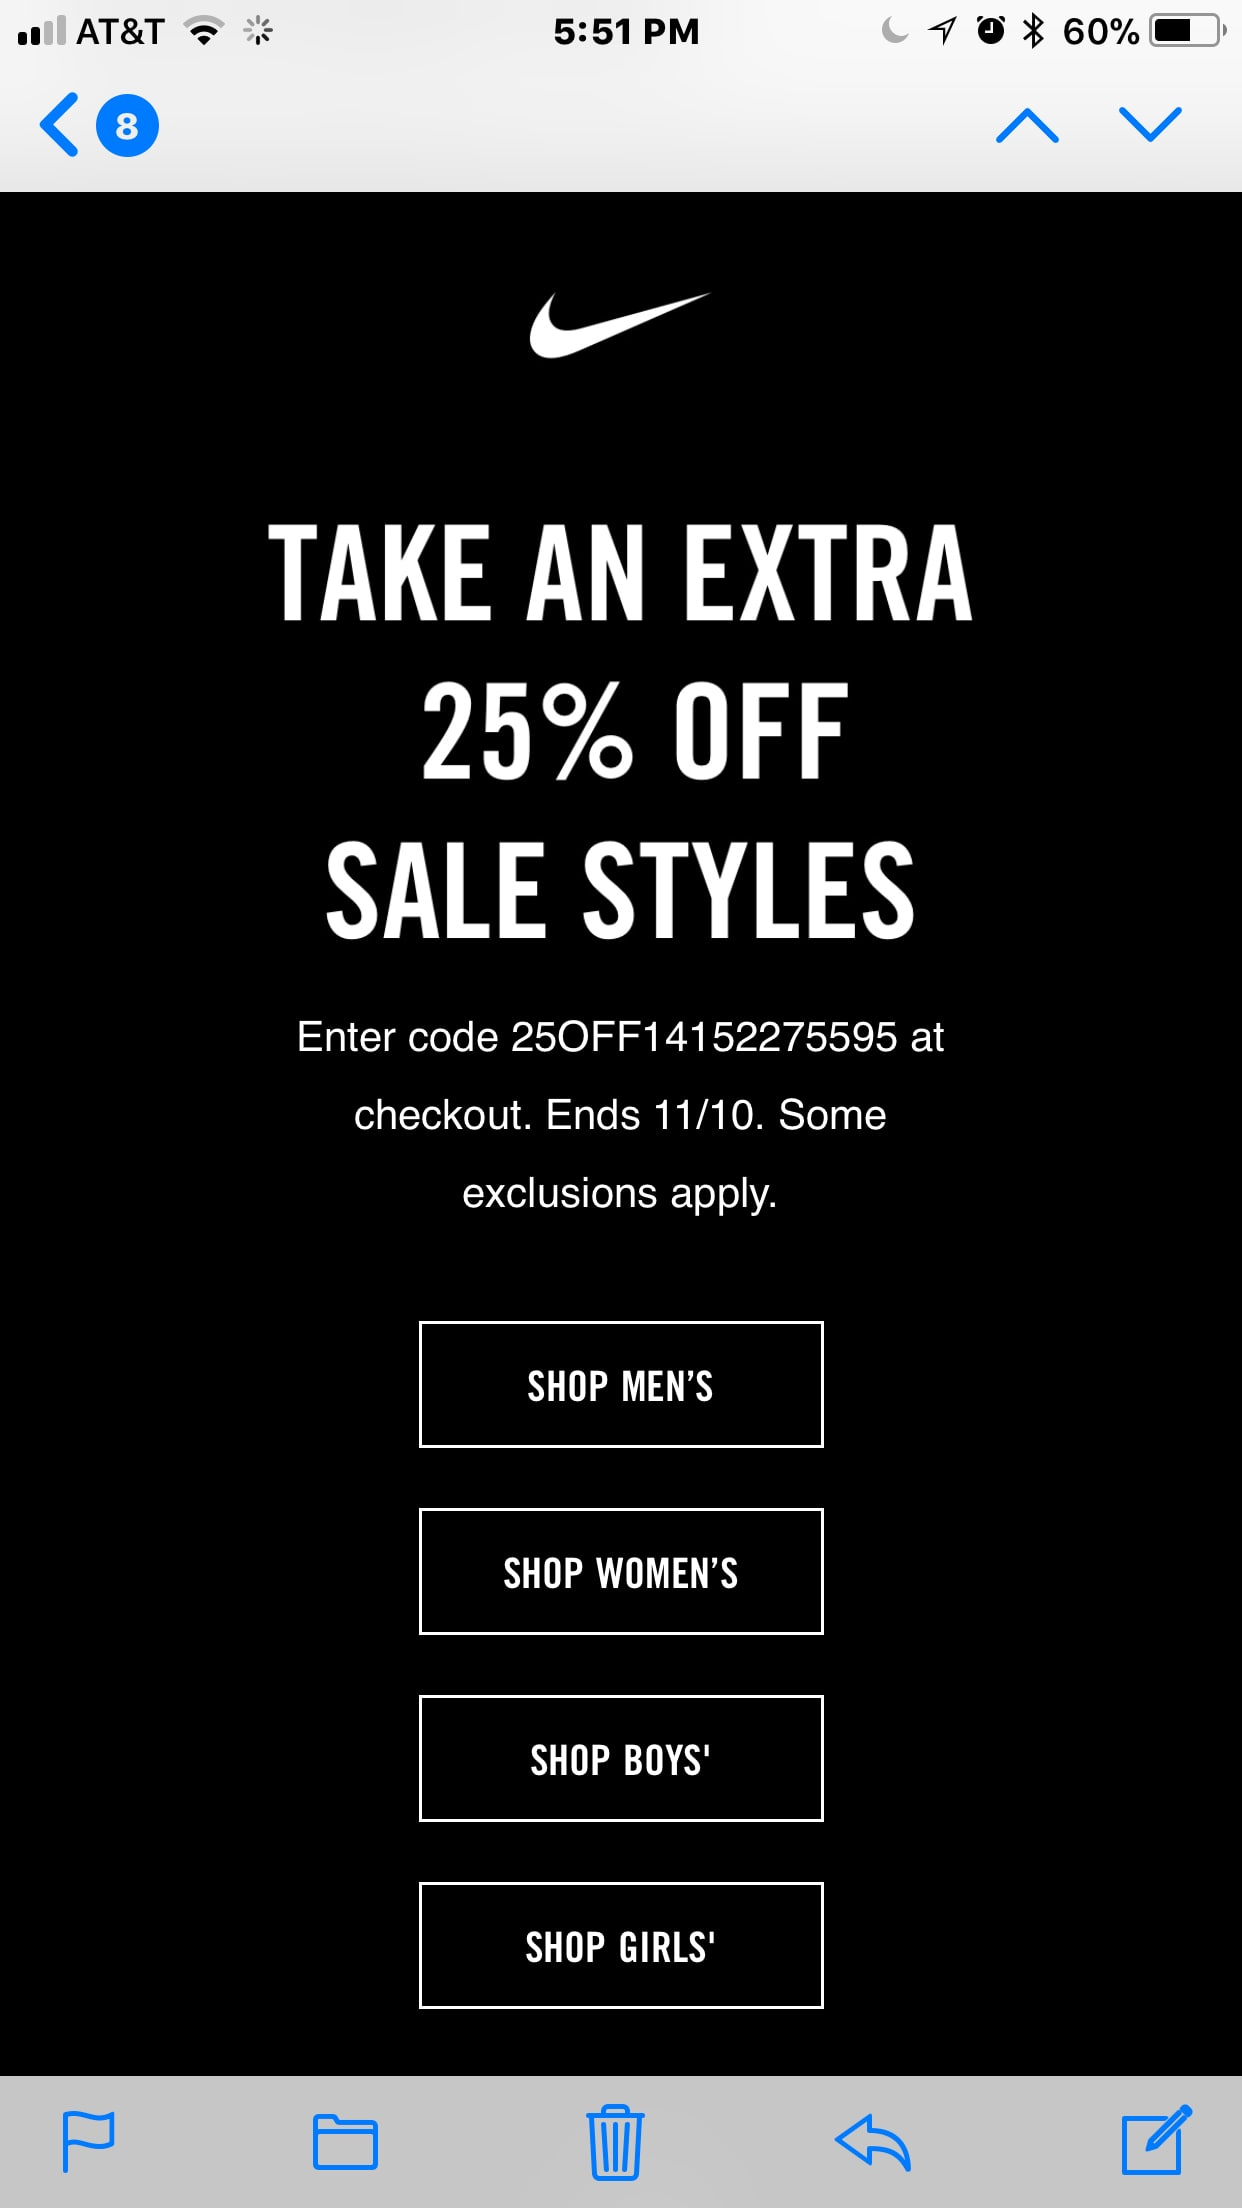 EXTRA 25% off SALE ITEM EMAIL with one time use code FROM NIKE.COM  (YMMV)